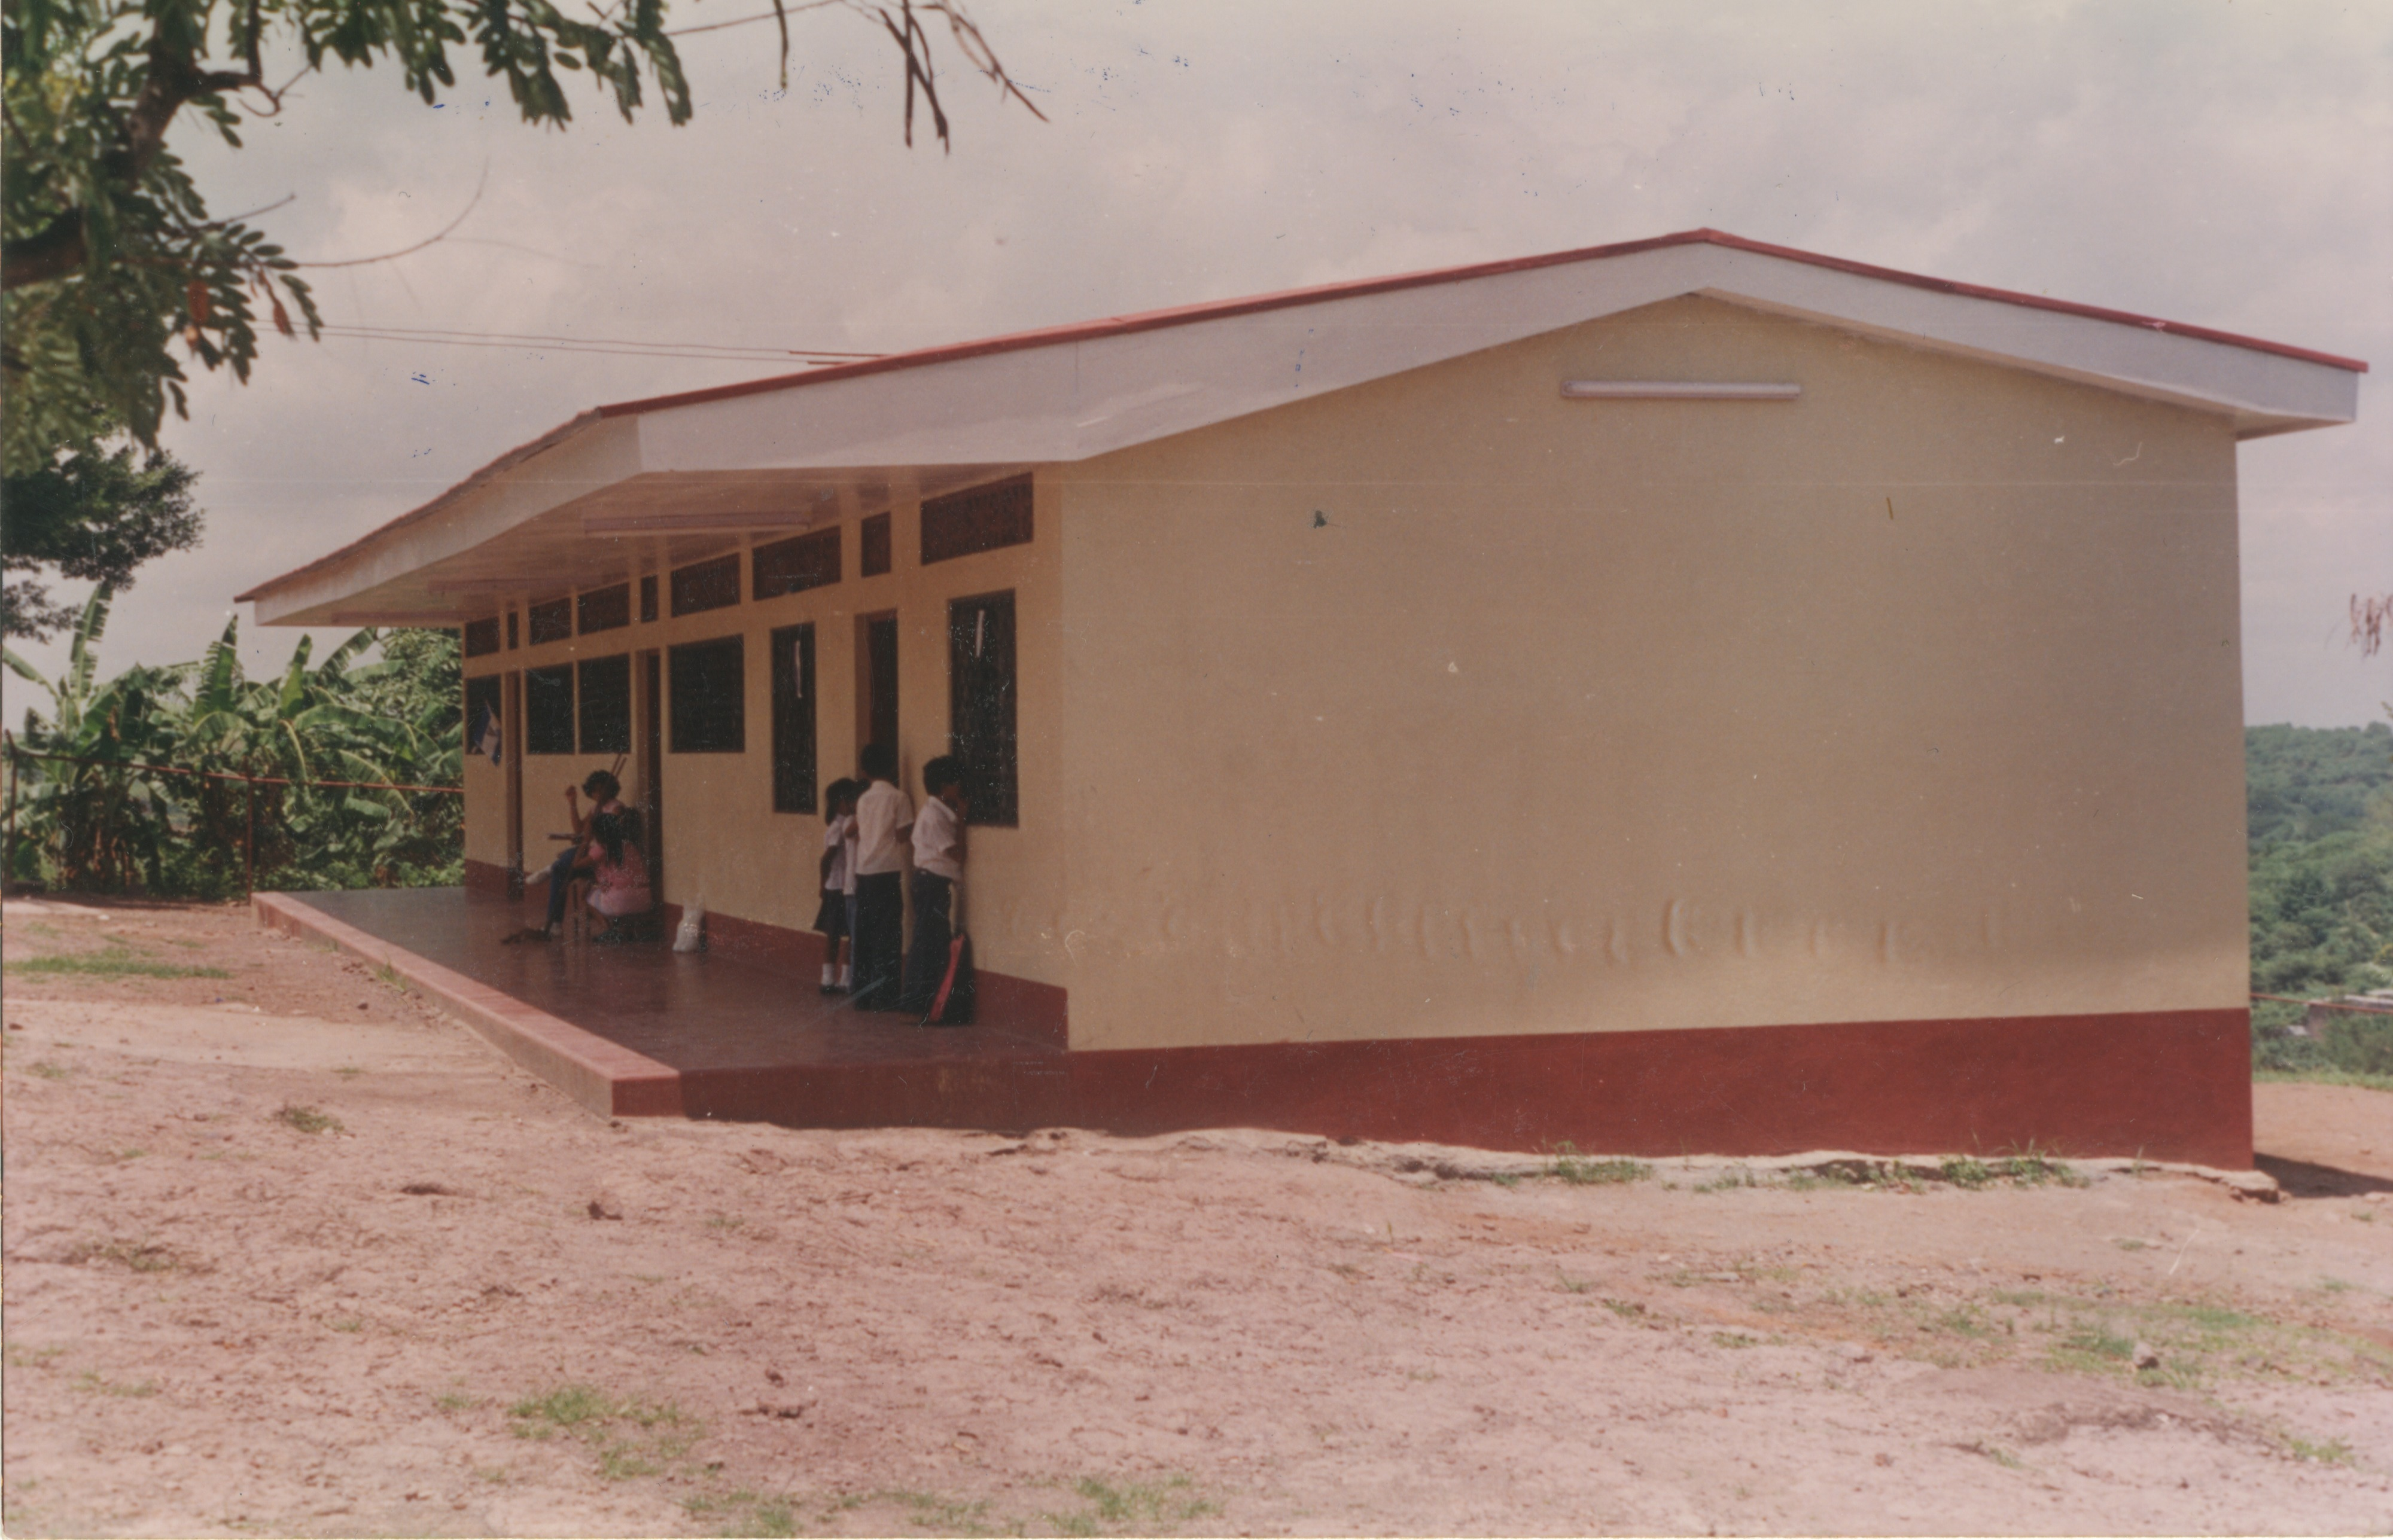 Interfaith Council for Peace and Justice: Classrooms in Juigalpa, Nicaragua, 1994 image